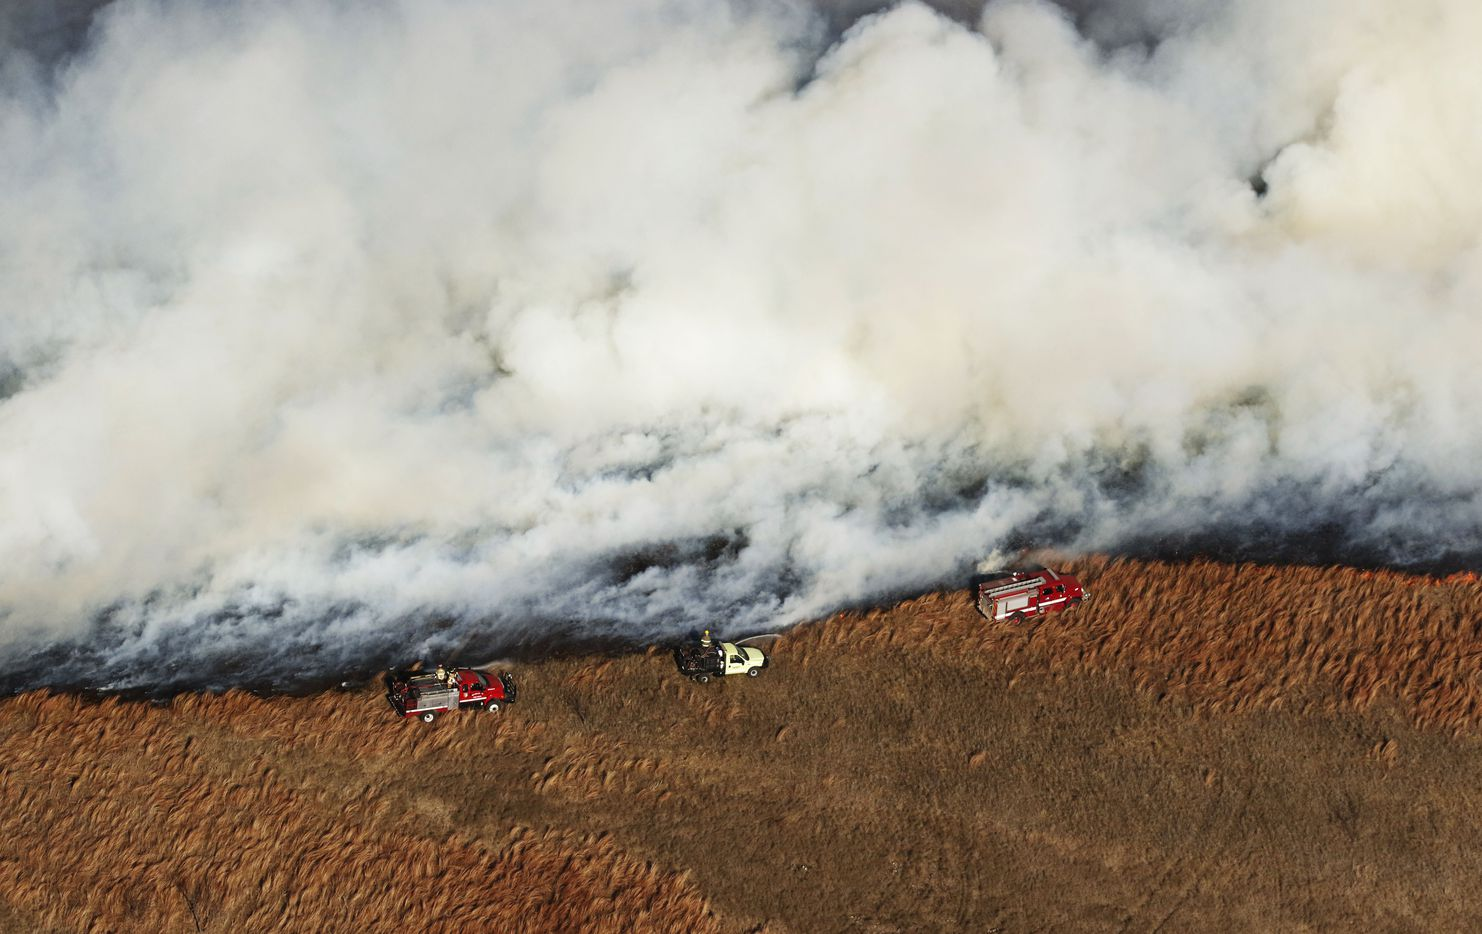 Fire crews tried to control a grass fire west of Fort Worth, Texas, on Monday January 22, 2018.